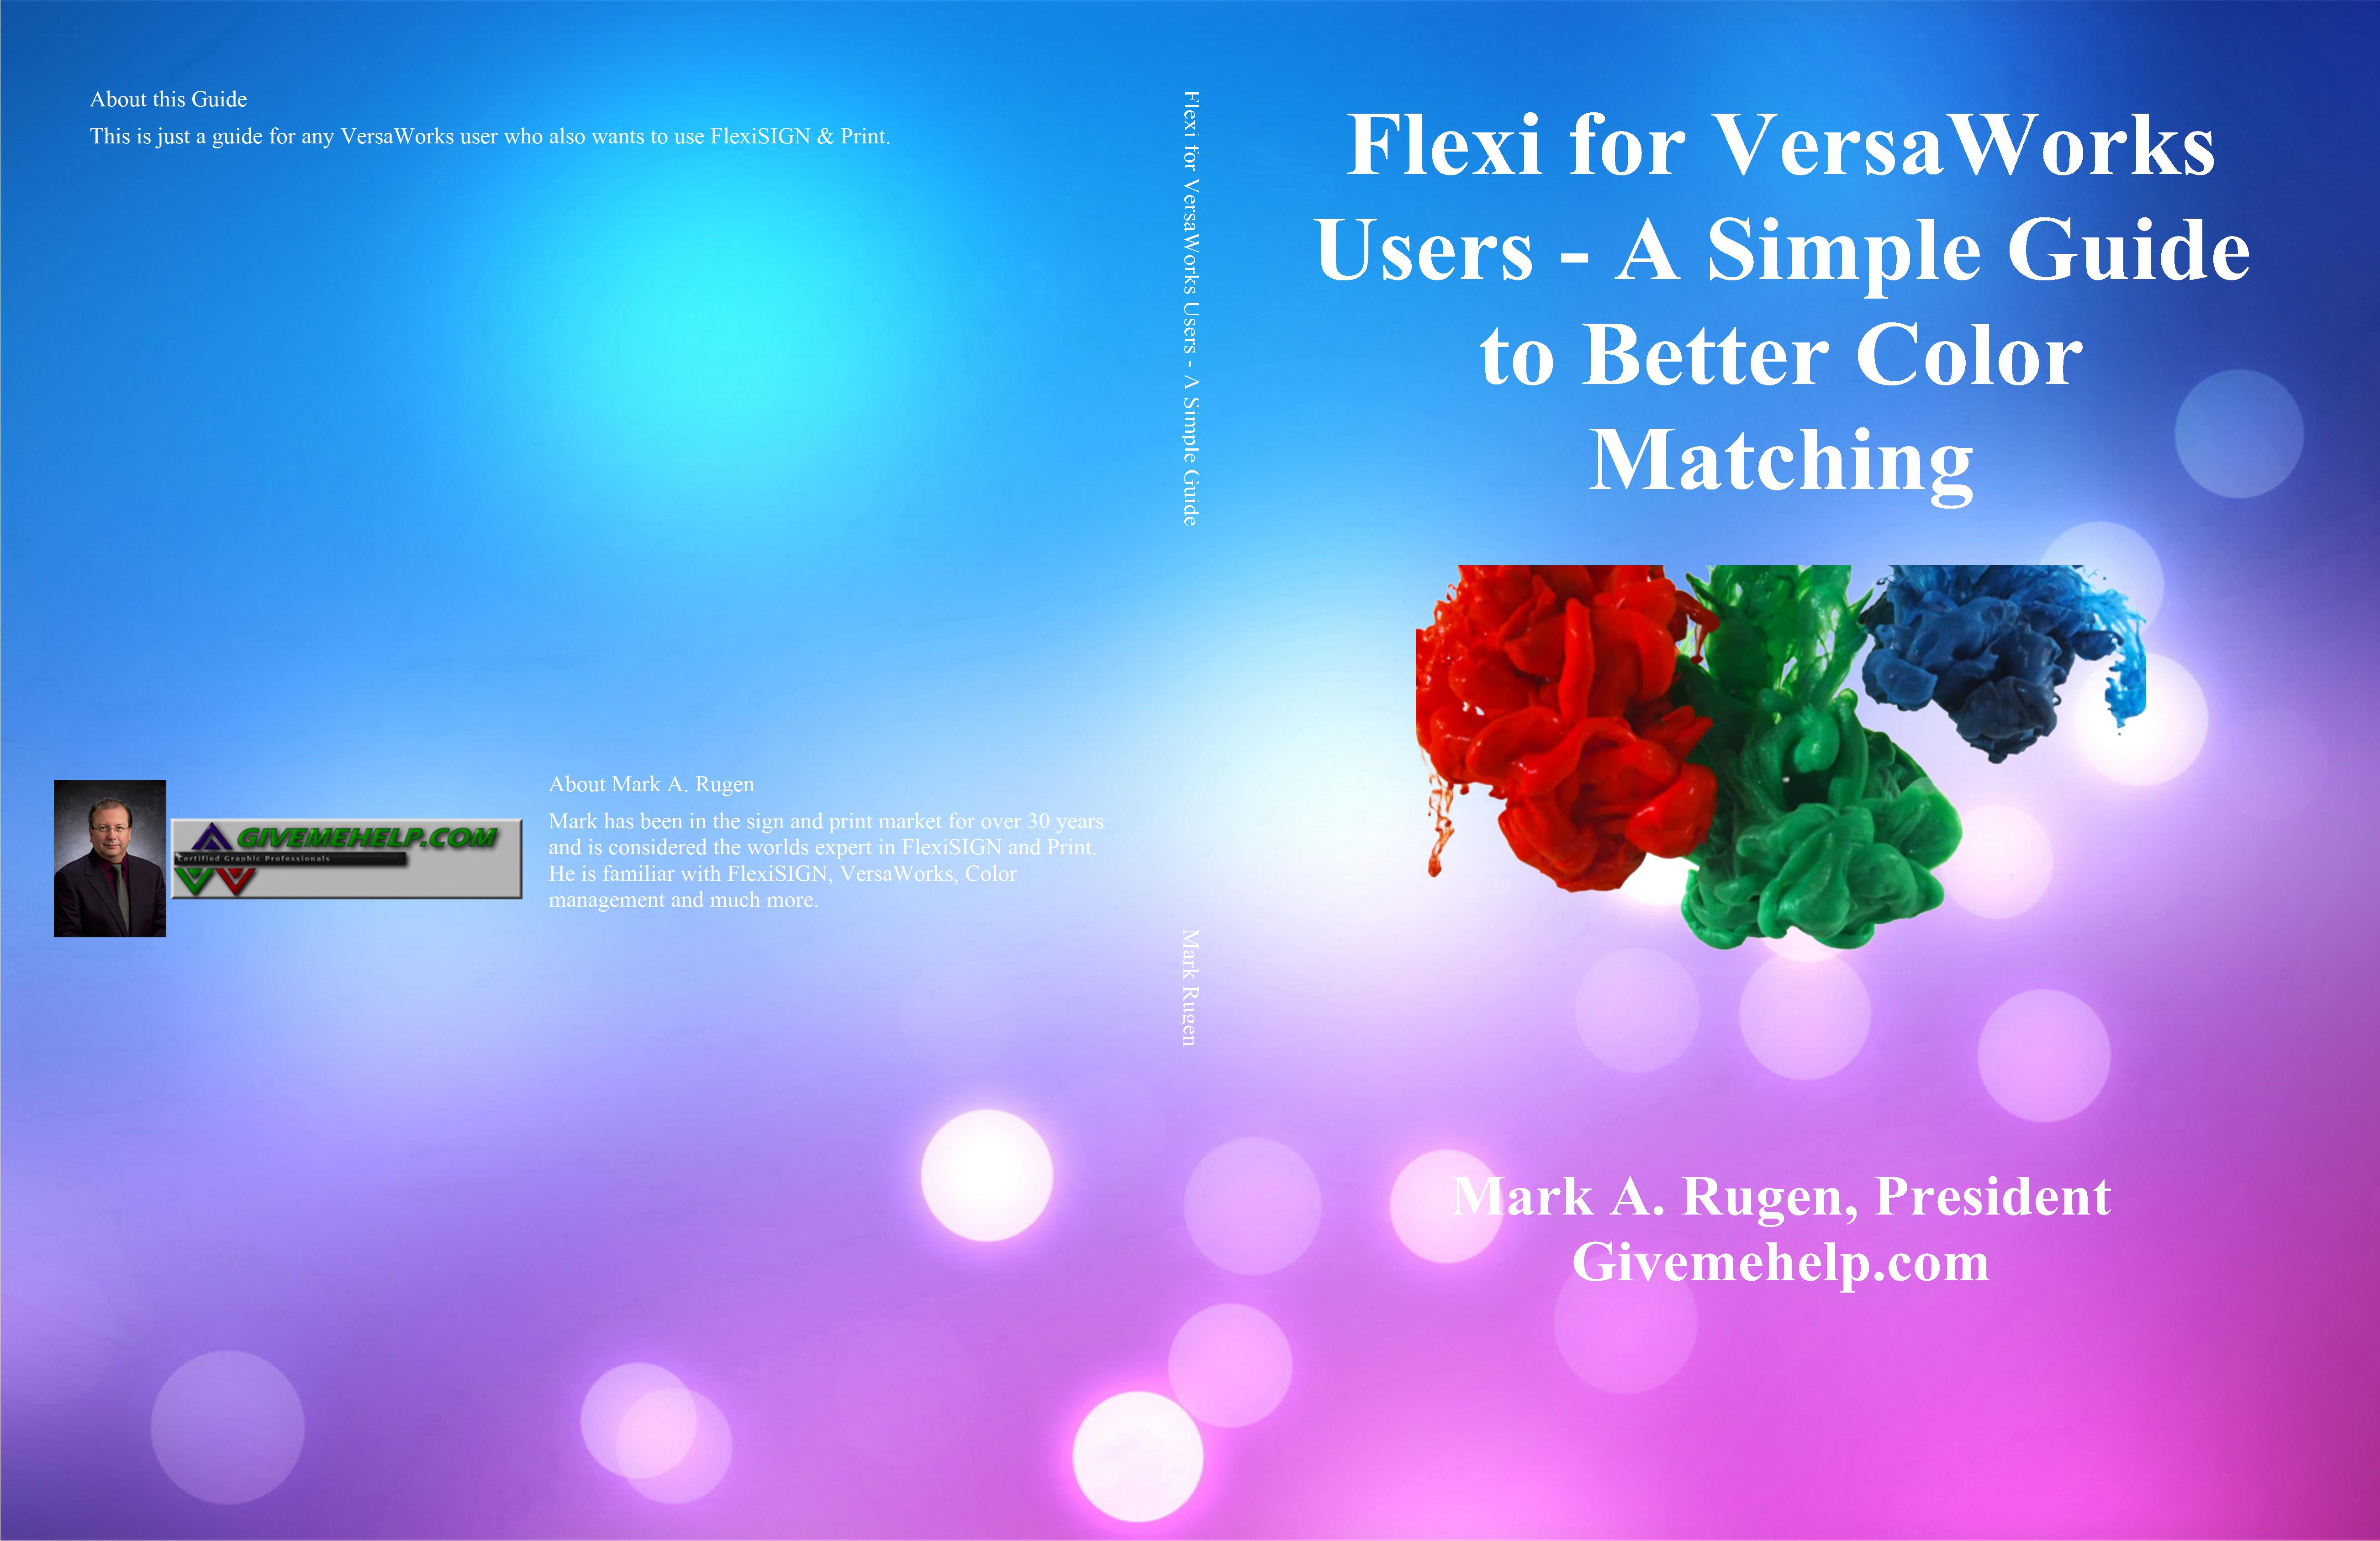 Flexi for VersaWorks Users - A Simple Guide to Better Color Matching cover image